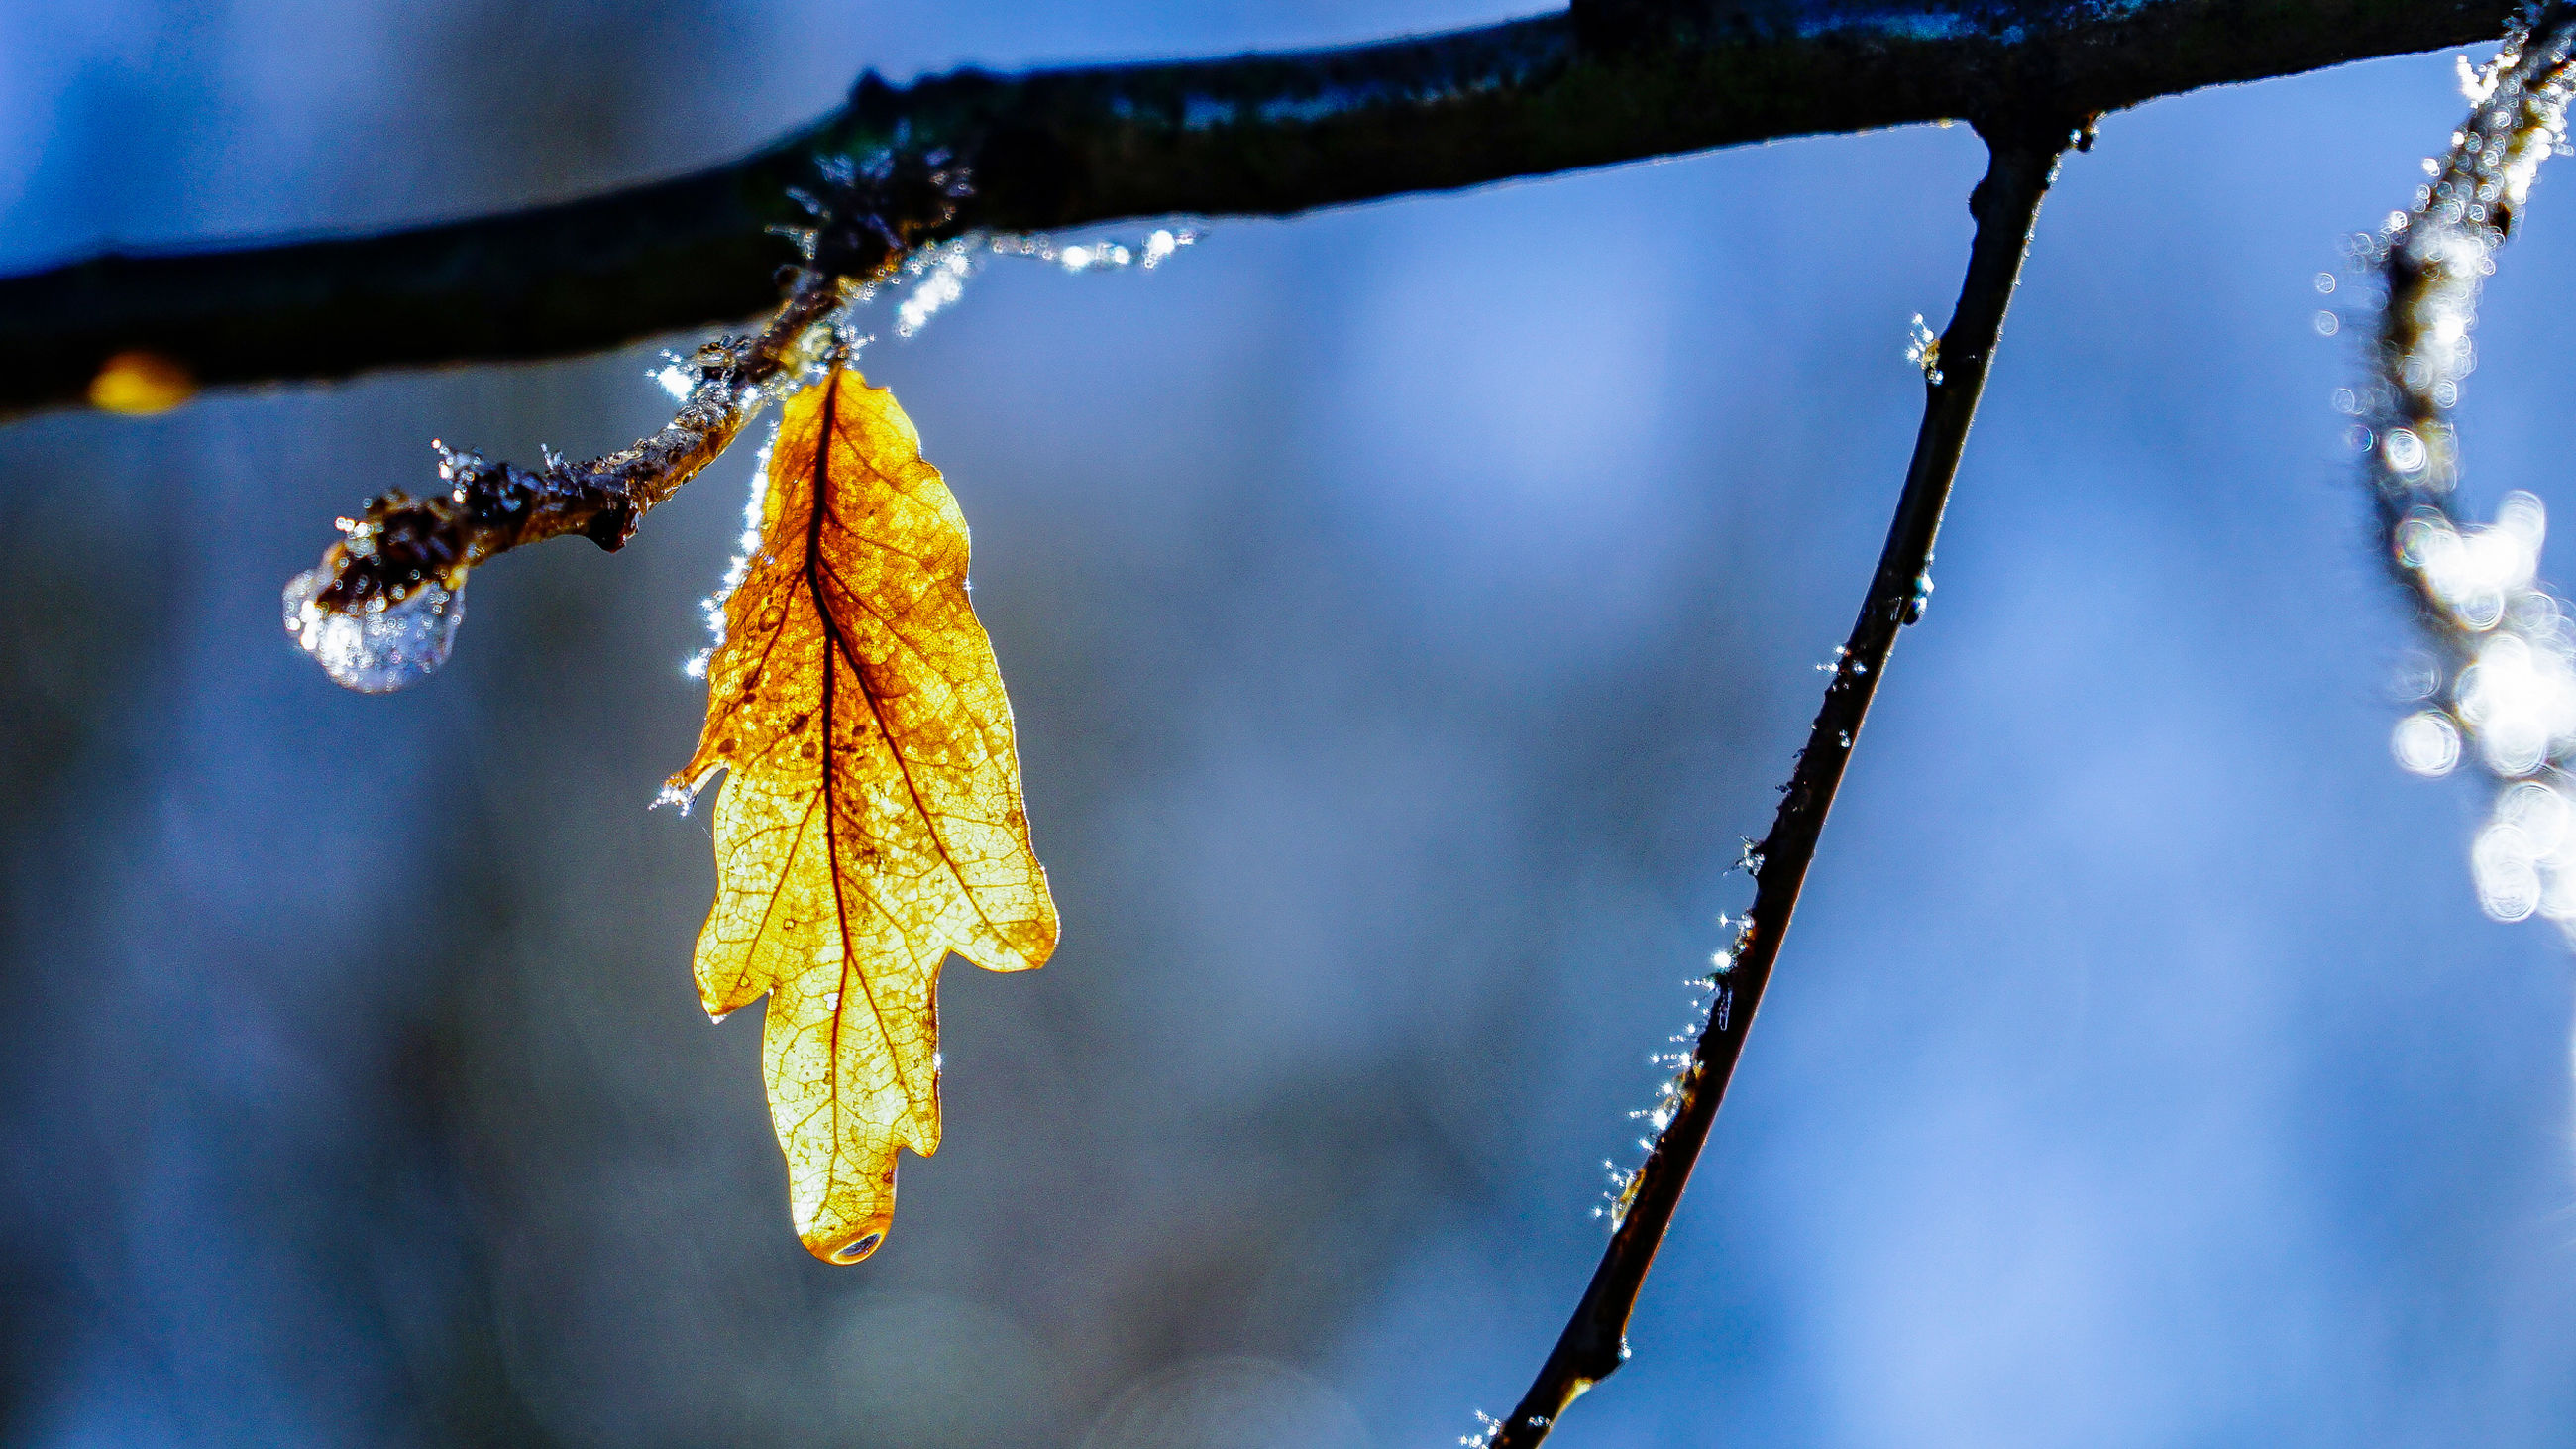 cold temperature, winter, nature, beauty in nature, catkin, frozen, weather, hanging, focus on foreground, snow, outdoors, ice, no people, day, twig, branch, tree, close-up, fragility, sky